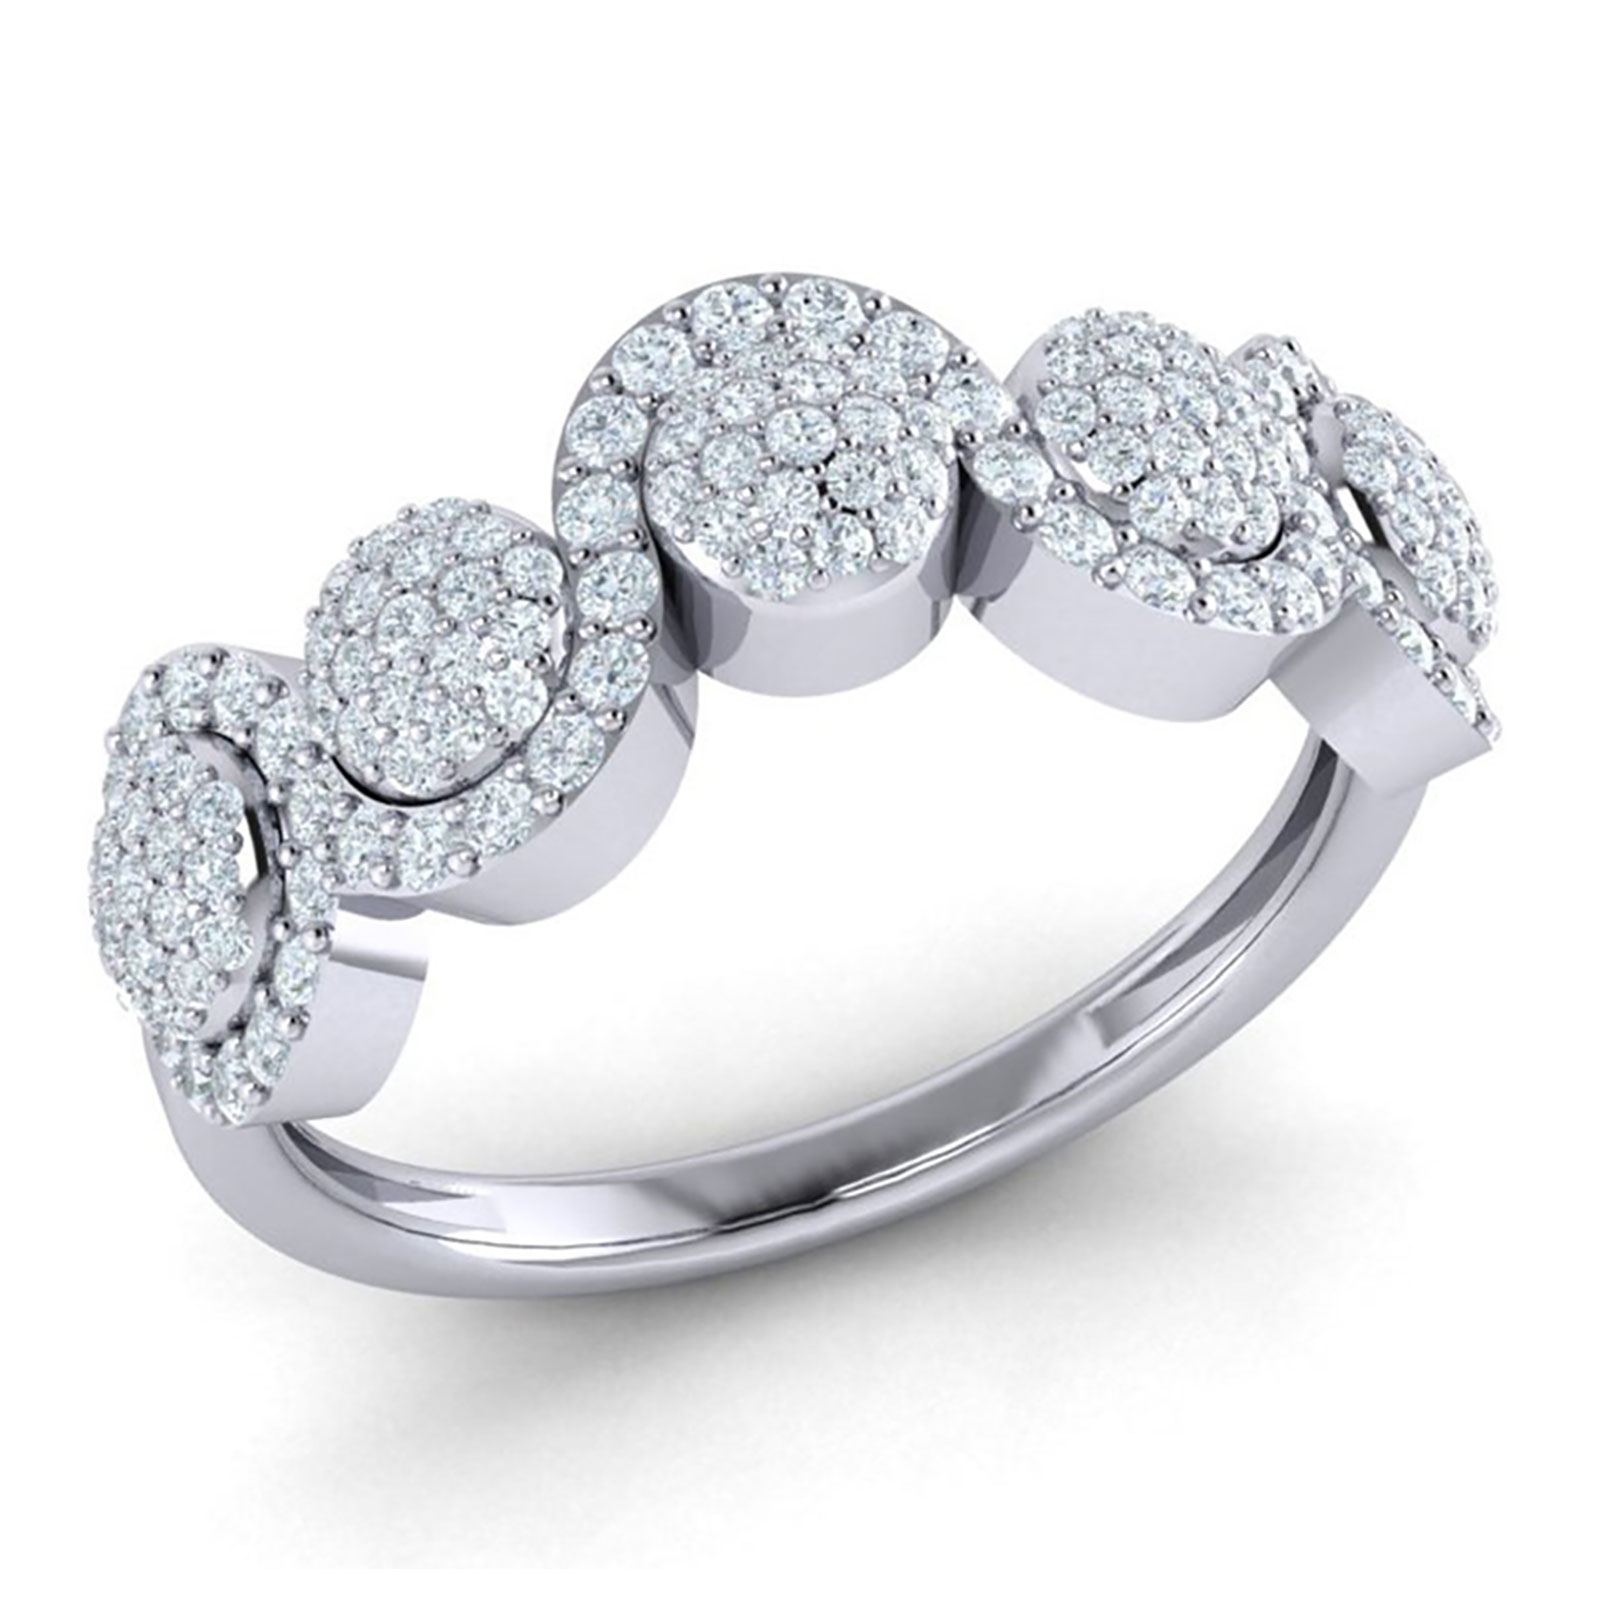 Jewelwesell 1ctw Round Cut Diamond Prong Women S Fancy Cluster